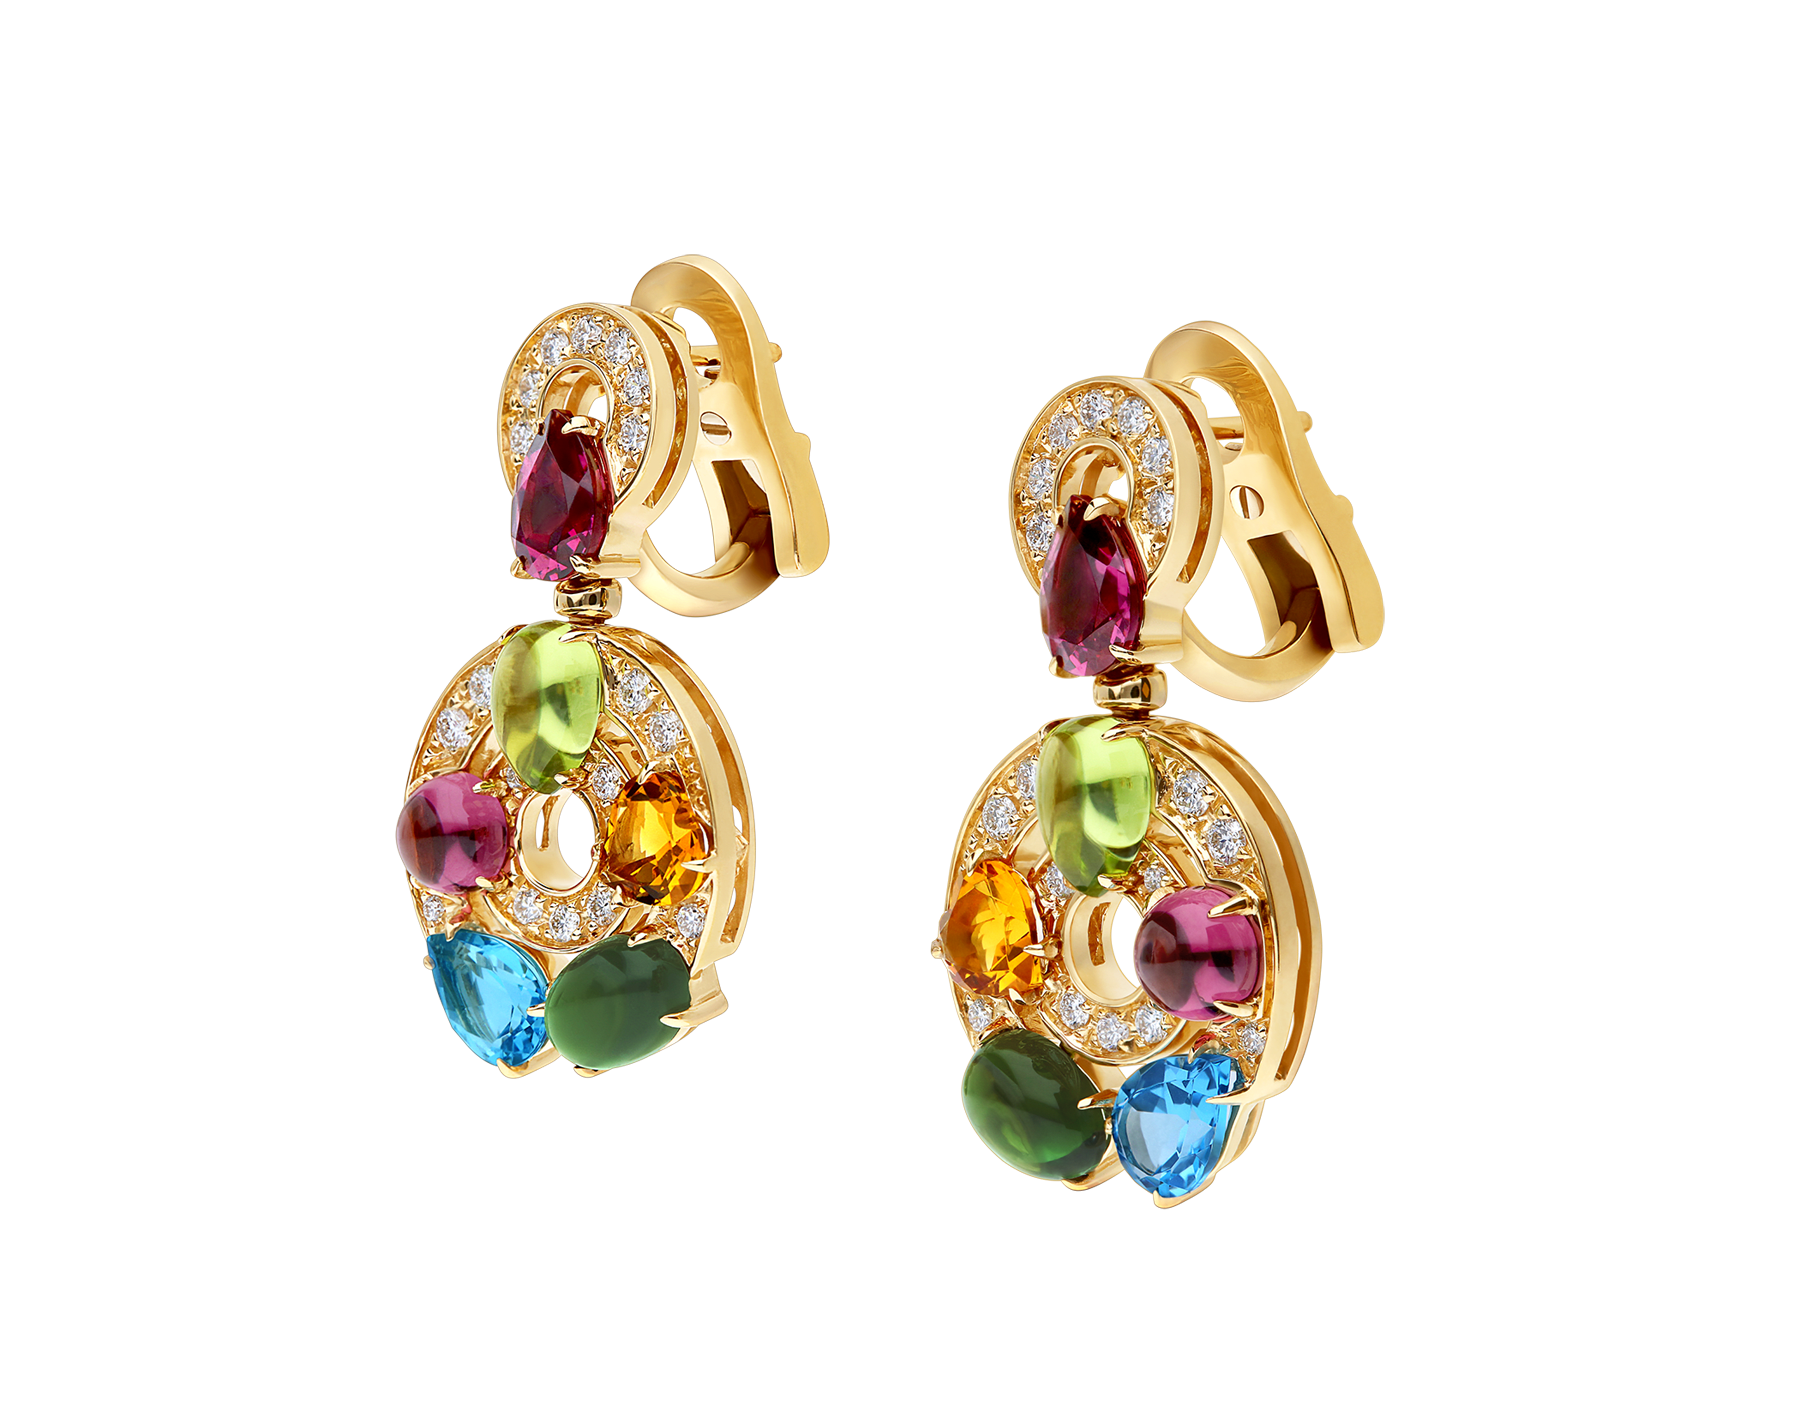 Astrale 18kt yellow gold earrings set with blue topazes, green tourmalines, peridots, citrine quartz, rhodolite garnets and pavé diamonds 339141 image 2